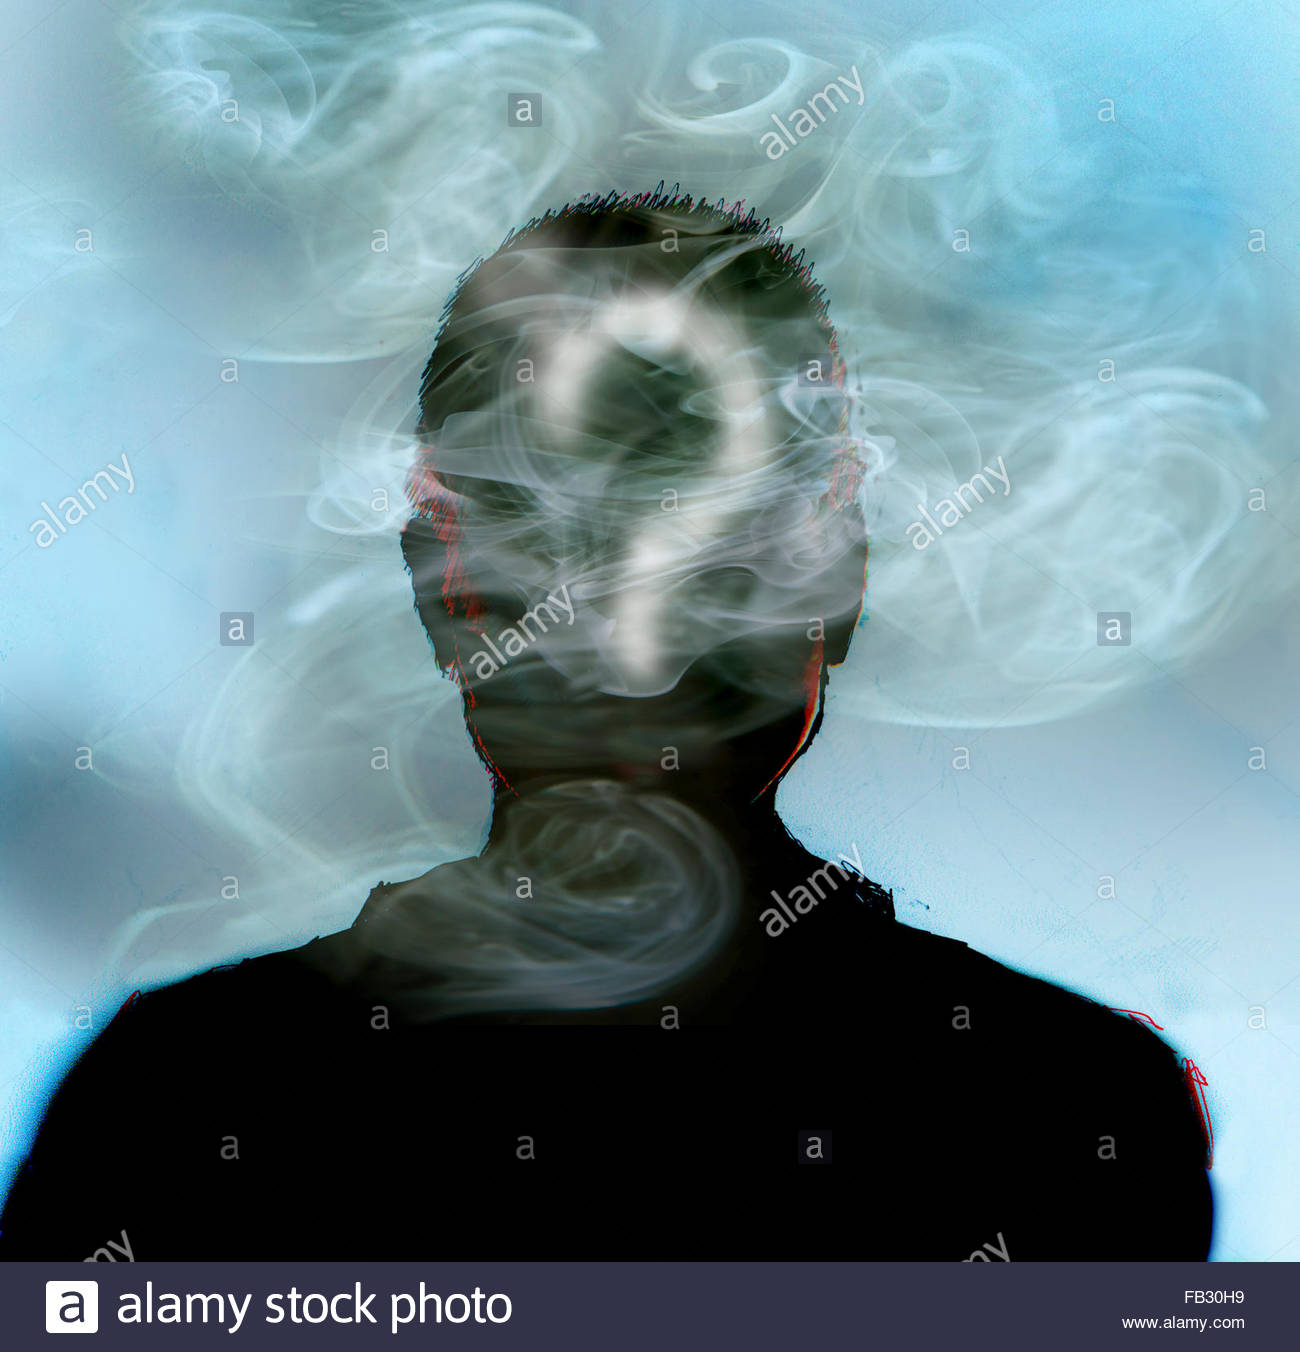 Man smoking with question mark in smoke covering head - Stock Image